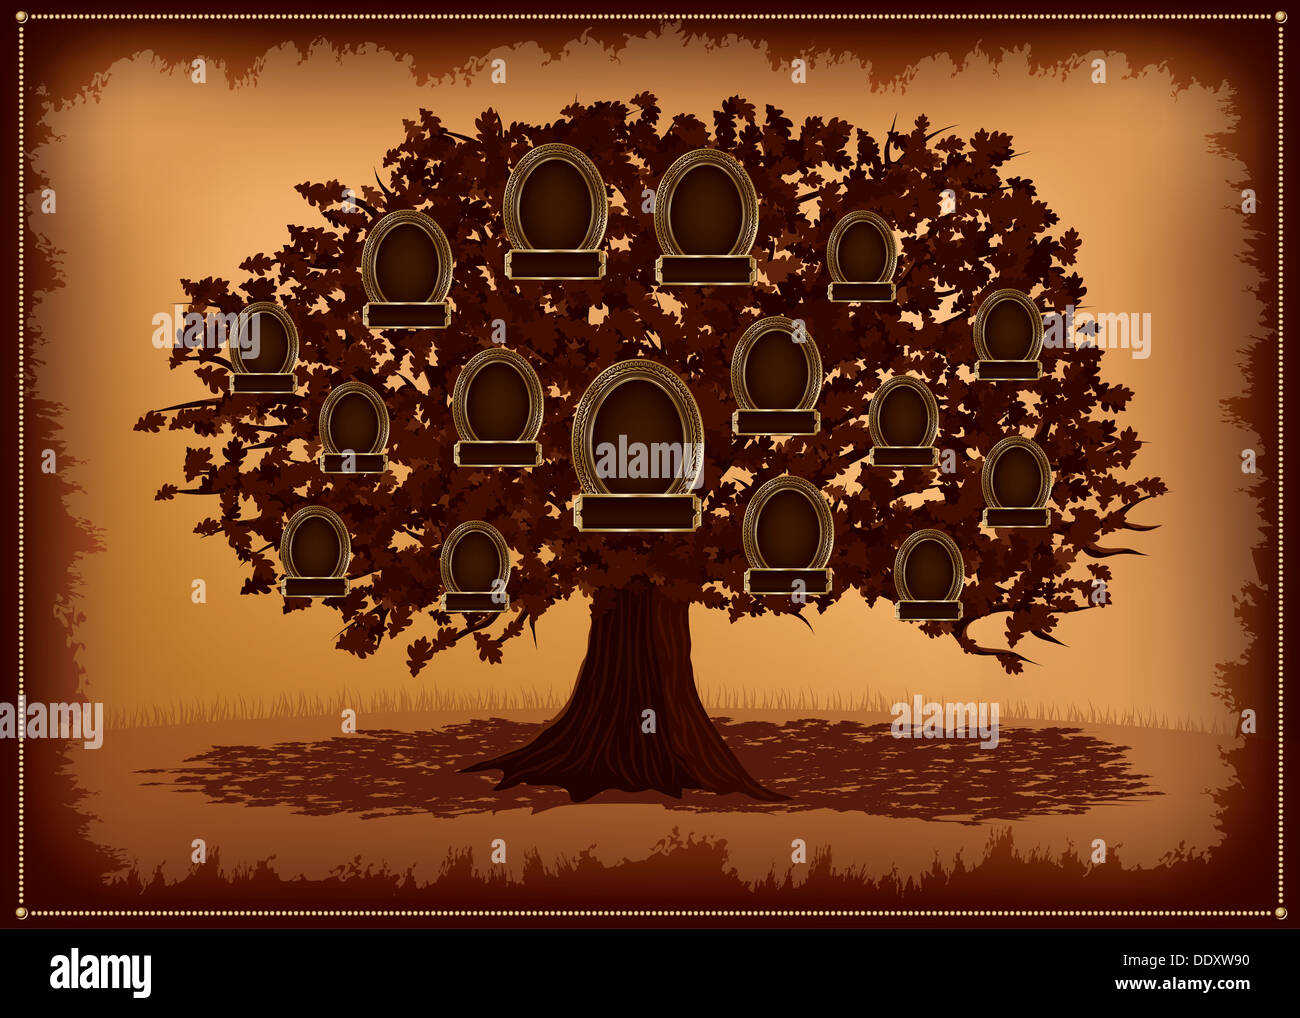 Vector family tree with frames and leafs. Place for text. - Stock Image